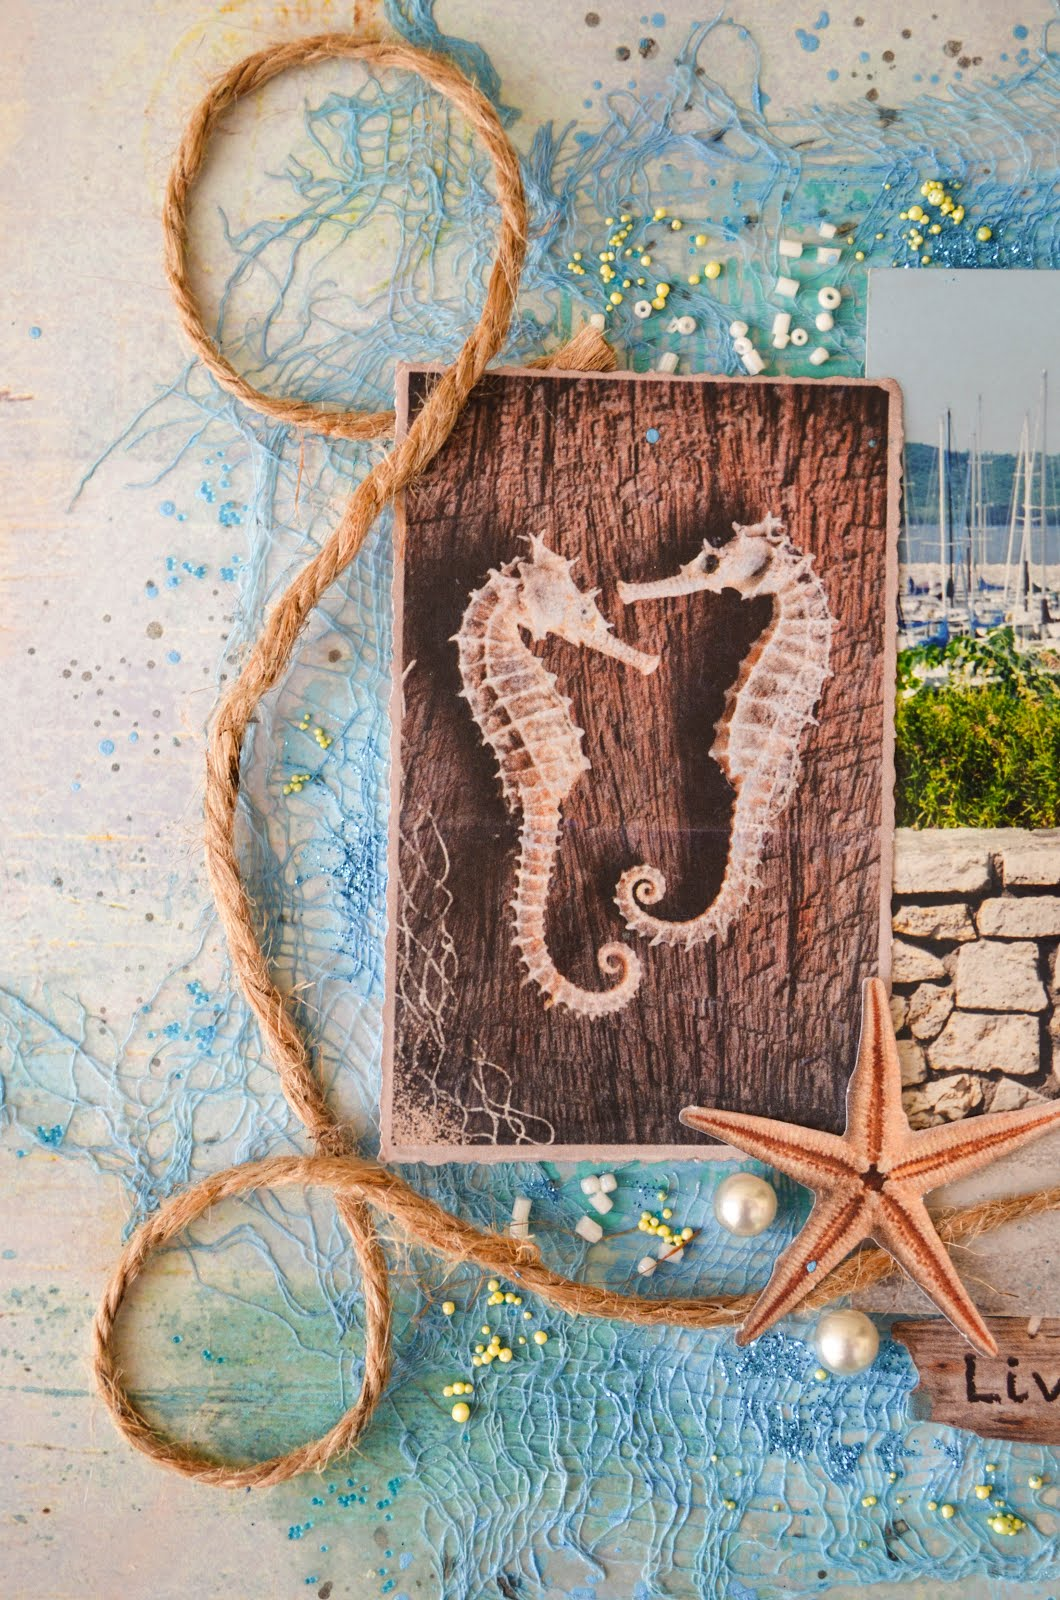 Seahorses nautical theme mixed media scrapbook page layout in blue with die cuts, cheesecloth, jute, seed beads, micro beads, and pearls